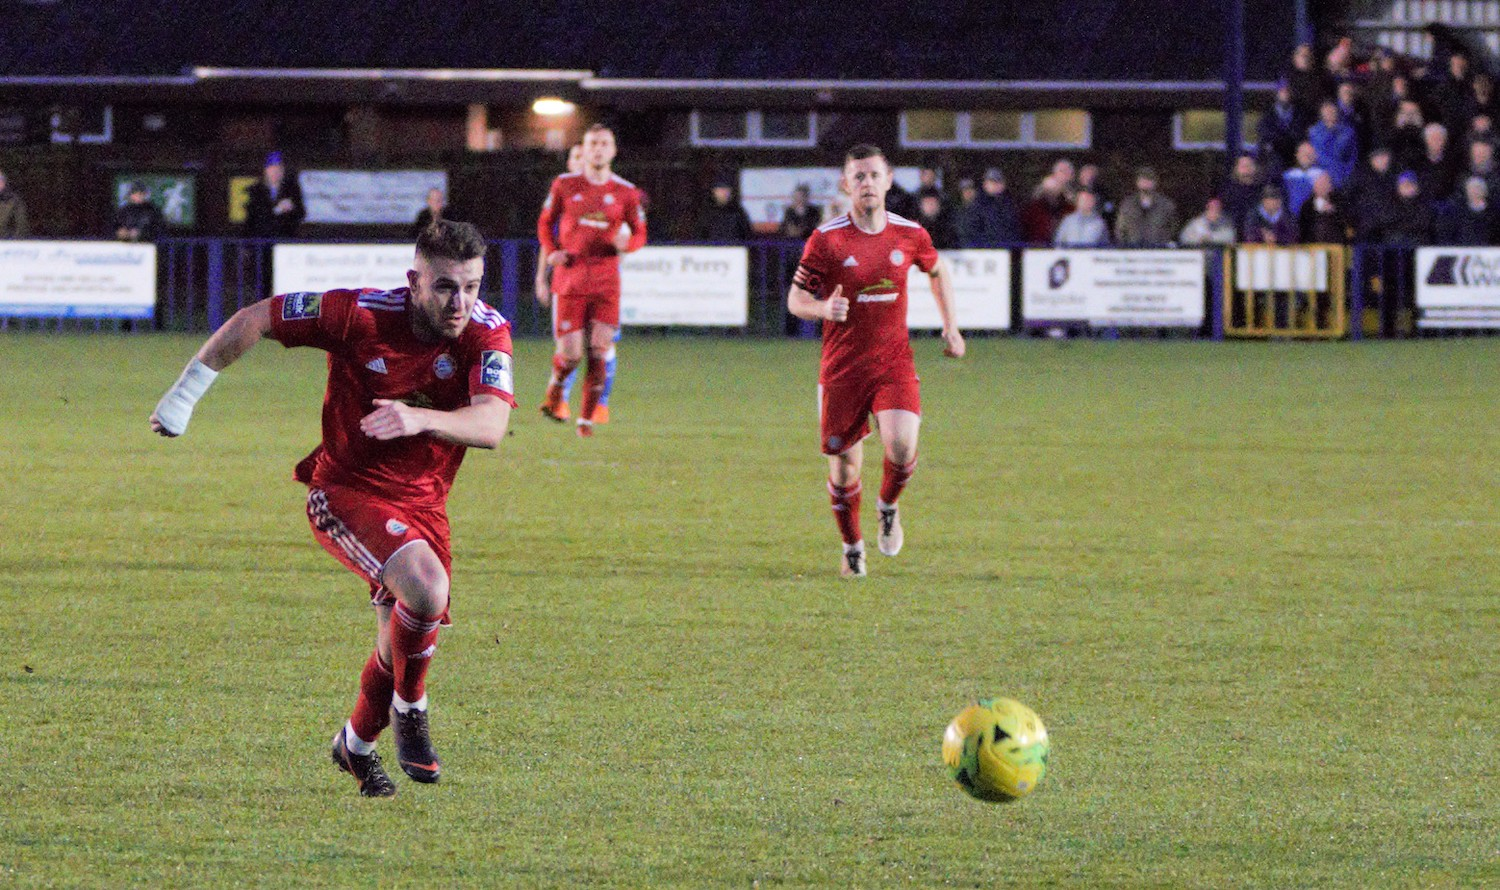 Read the full article - HIGHLIGHTS: Eastbourne Town 2-1 Worthing [A] – Cup